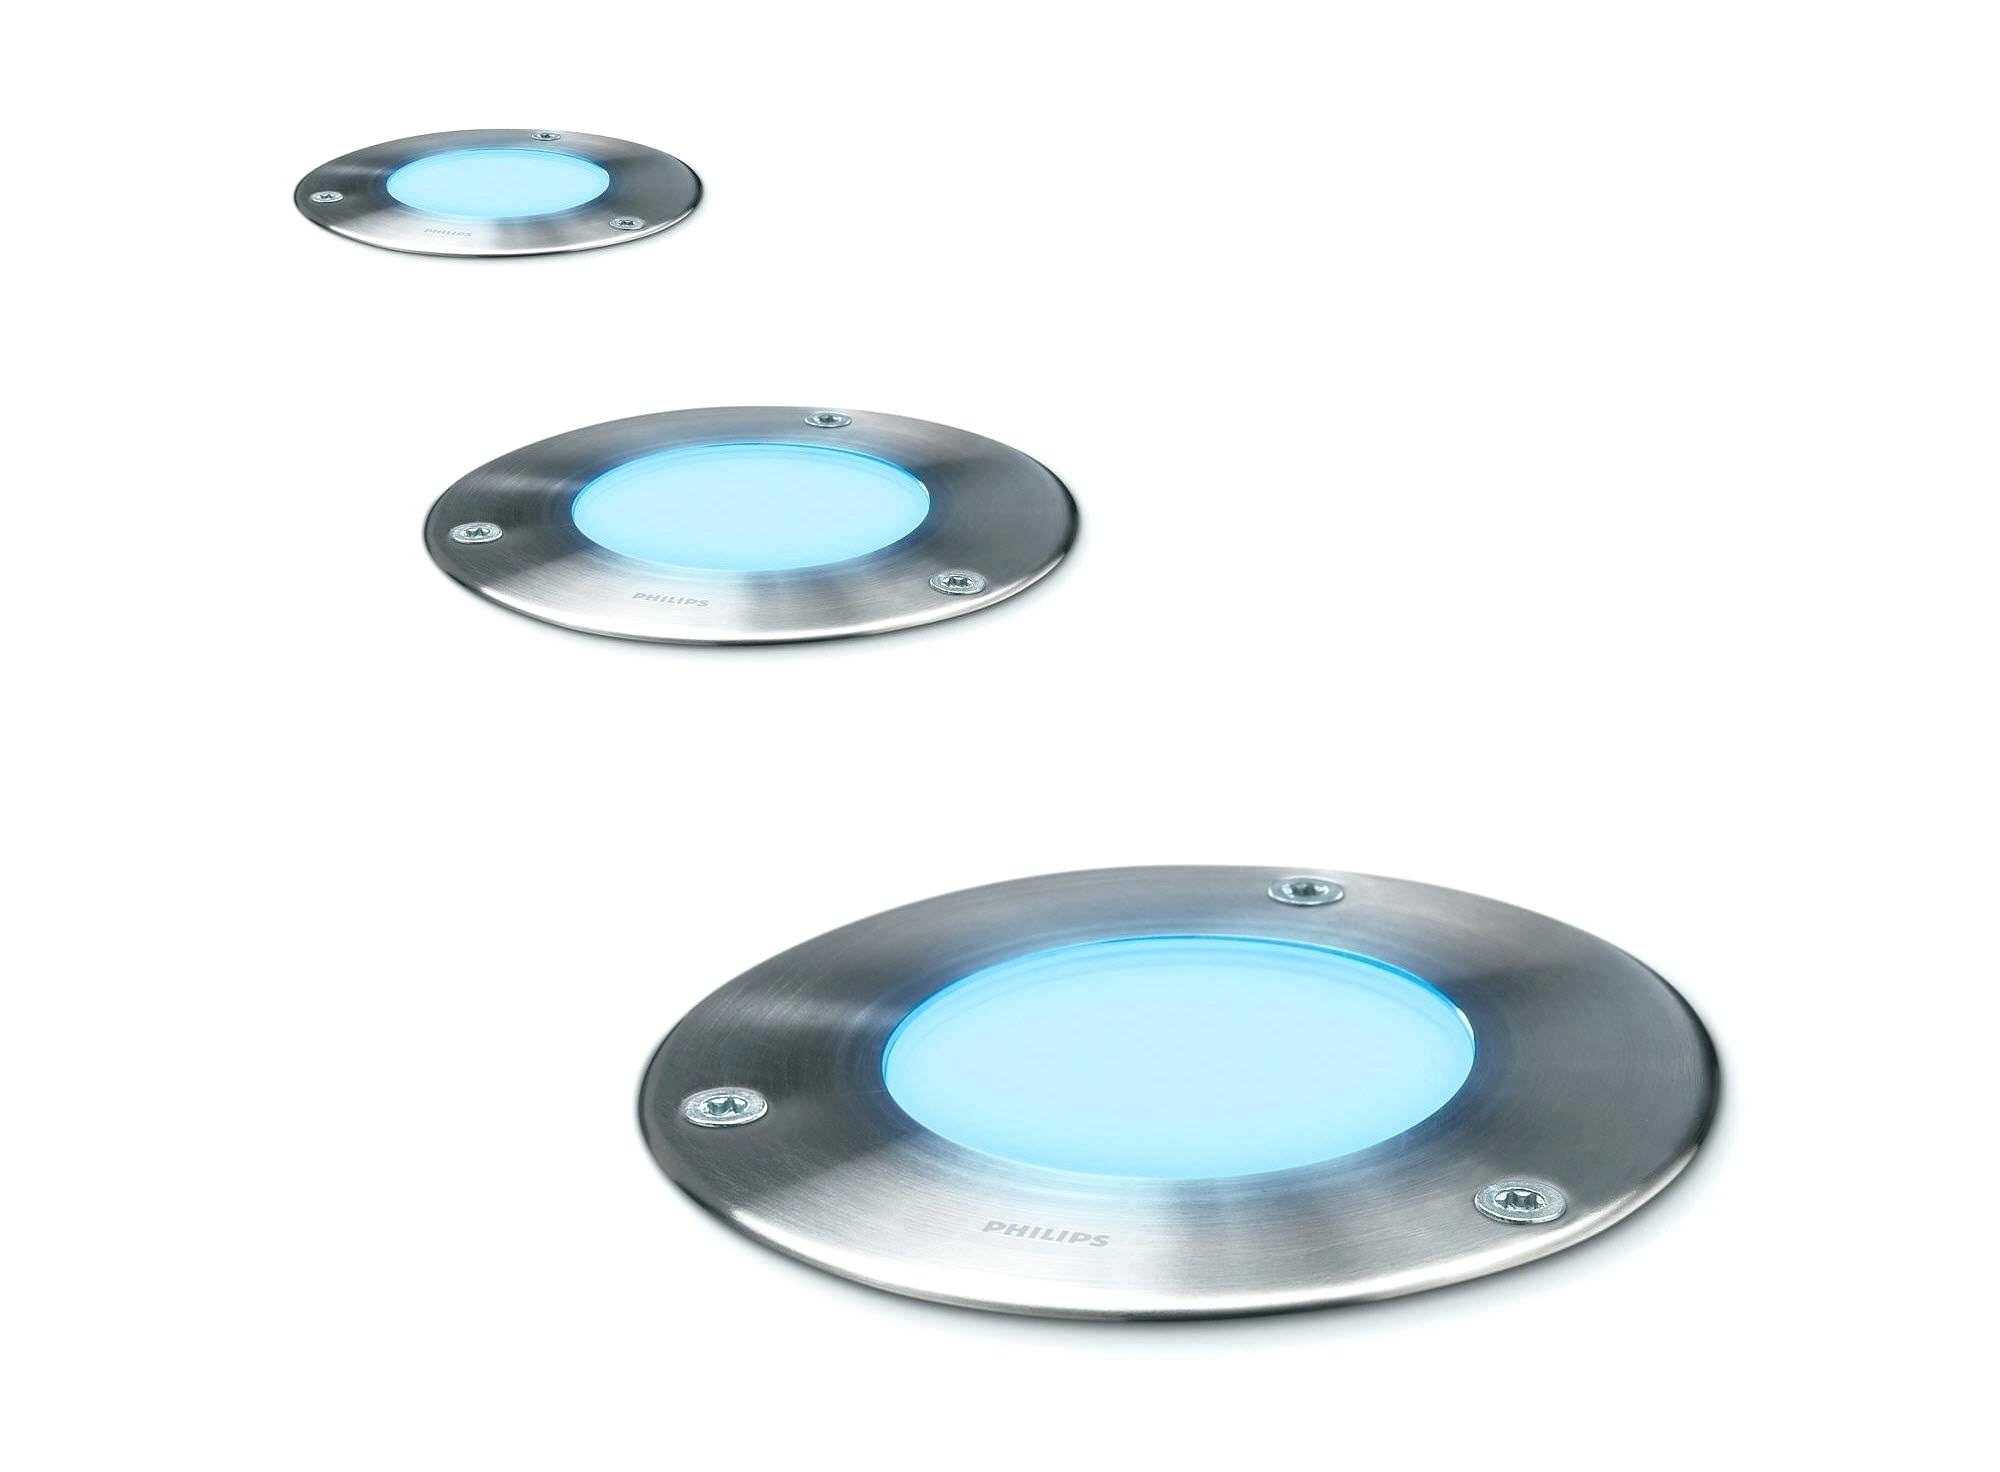 Outdoor Led Ceiling Light Fixture Lighting Bedroom Fixtures Design Regarding Outdoor Led Ceiling Lights (View 11 of 15)